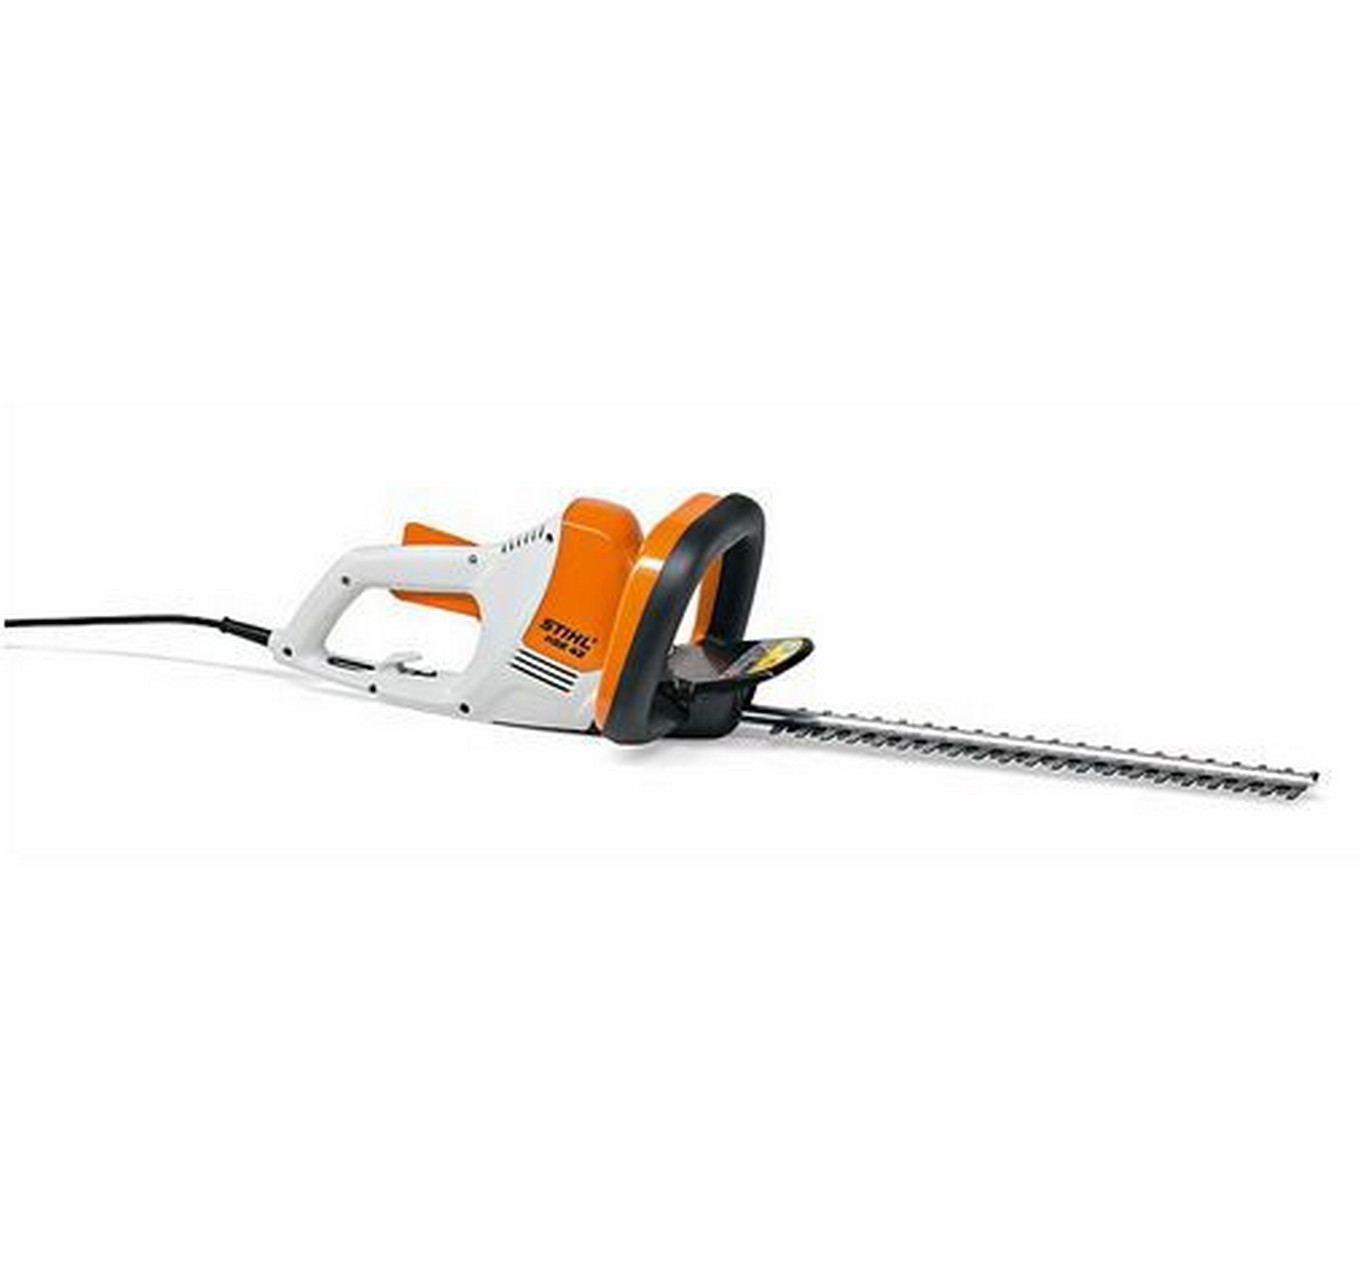 HSE 42 Hedge Trimmer 18